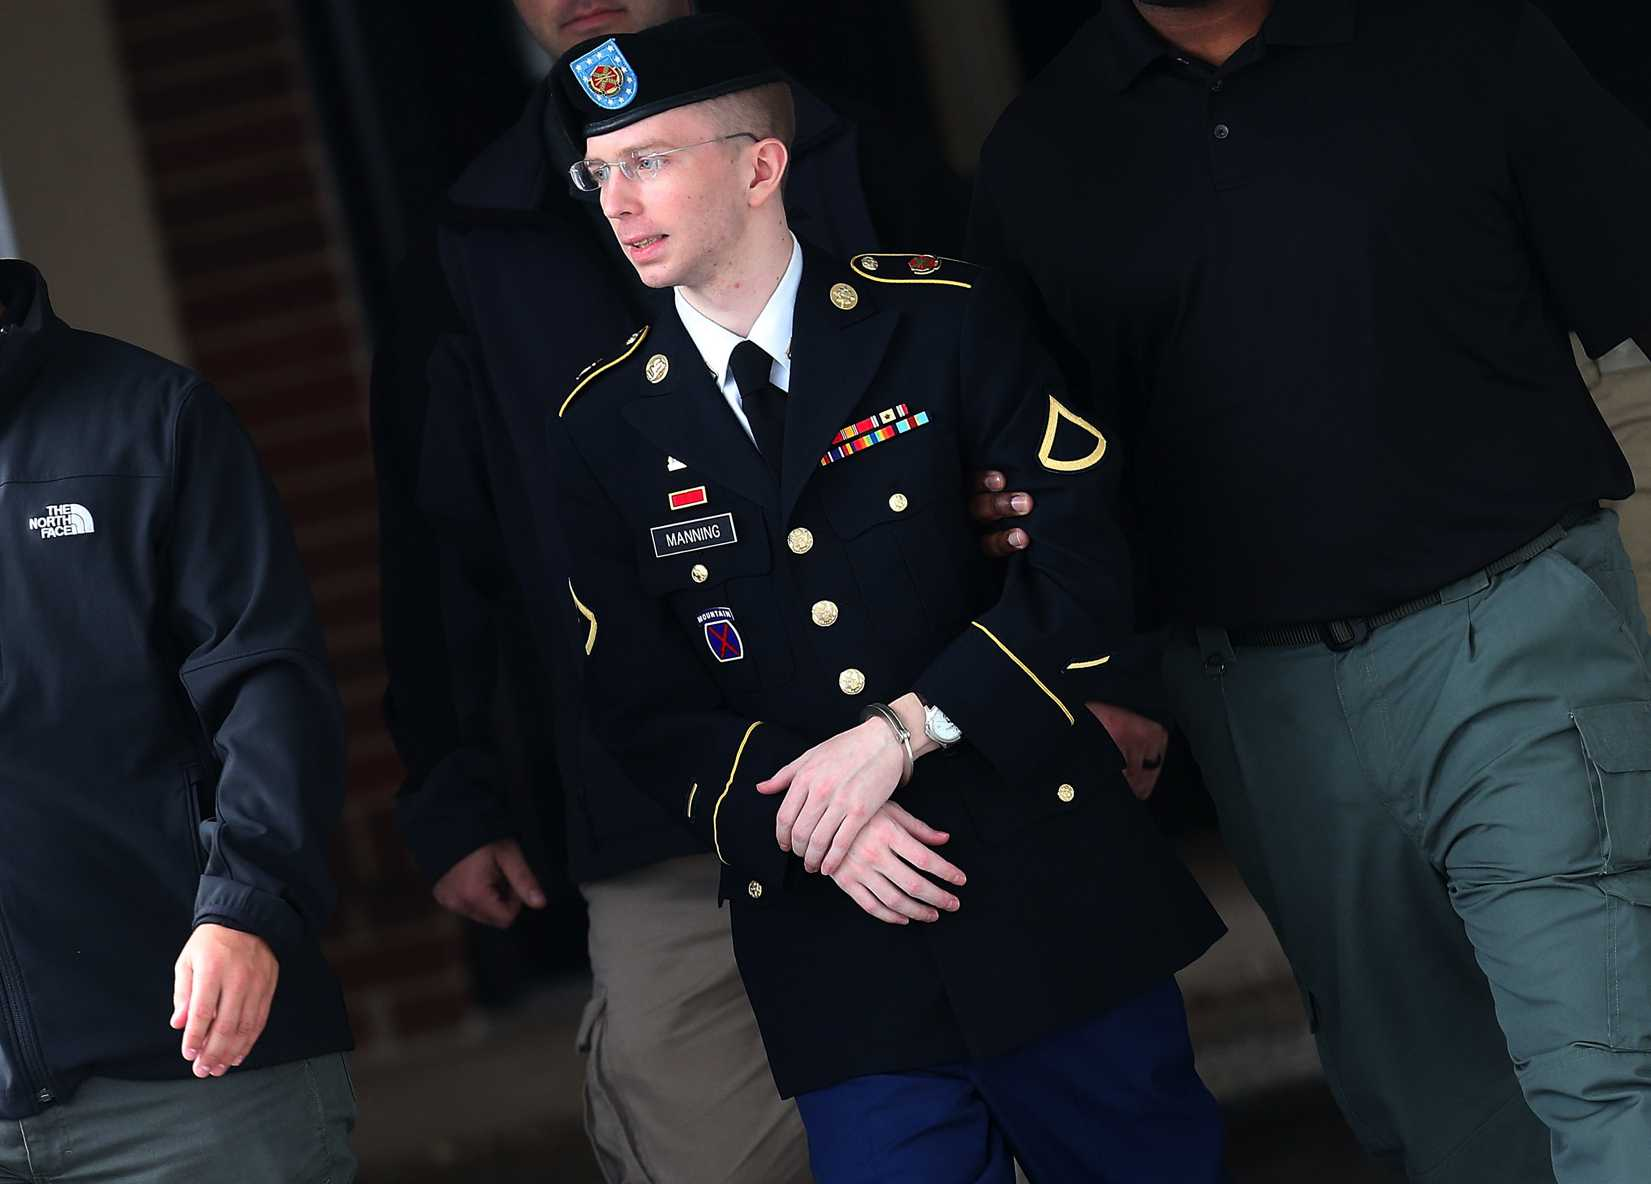 U.S. Army Private First Class Bradley Manning is escorted out of a military court during the sentencing phase of her trial in Fort Meade, Md., on Aug. 20, 2013